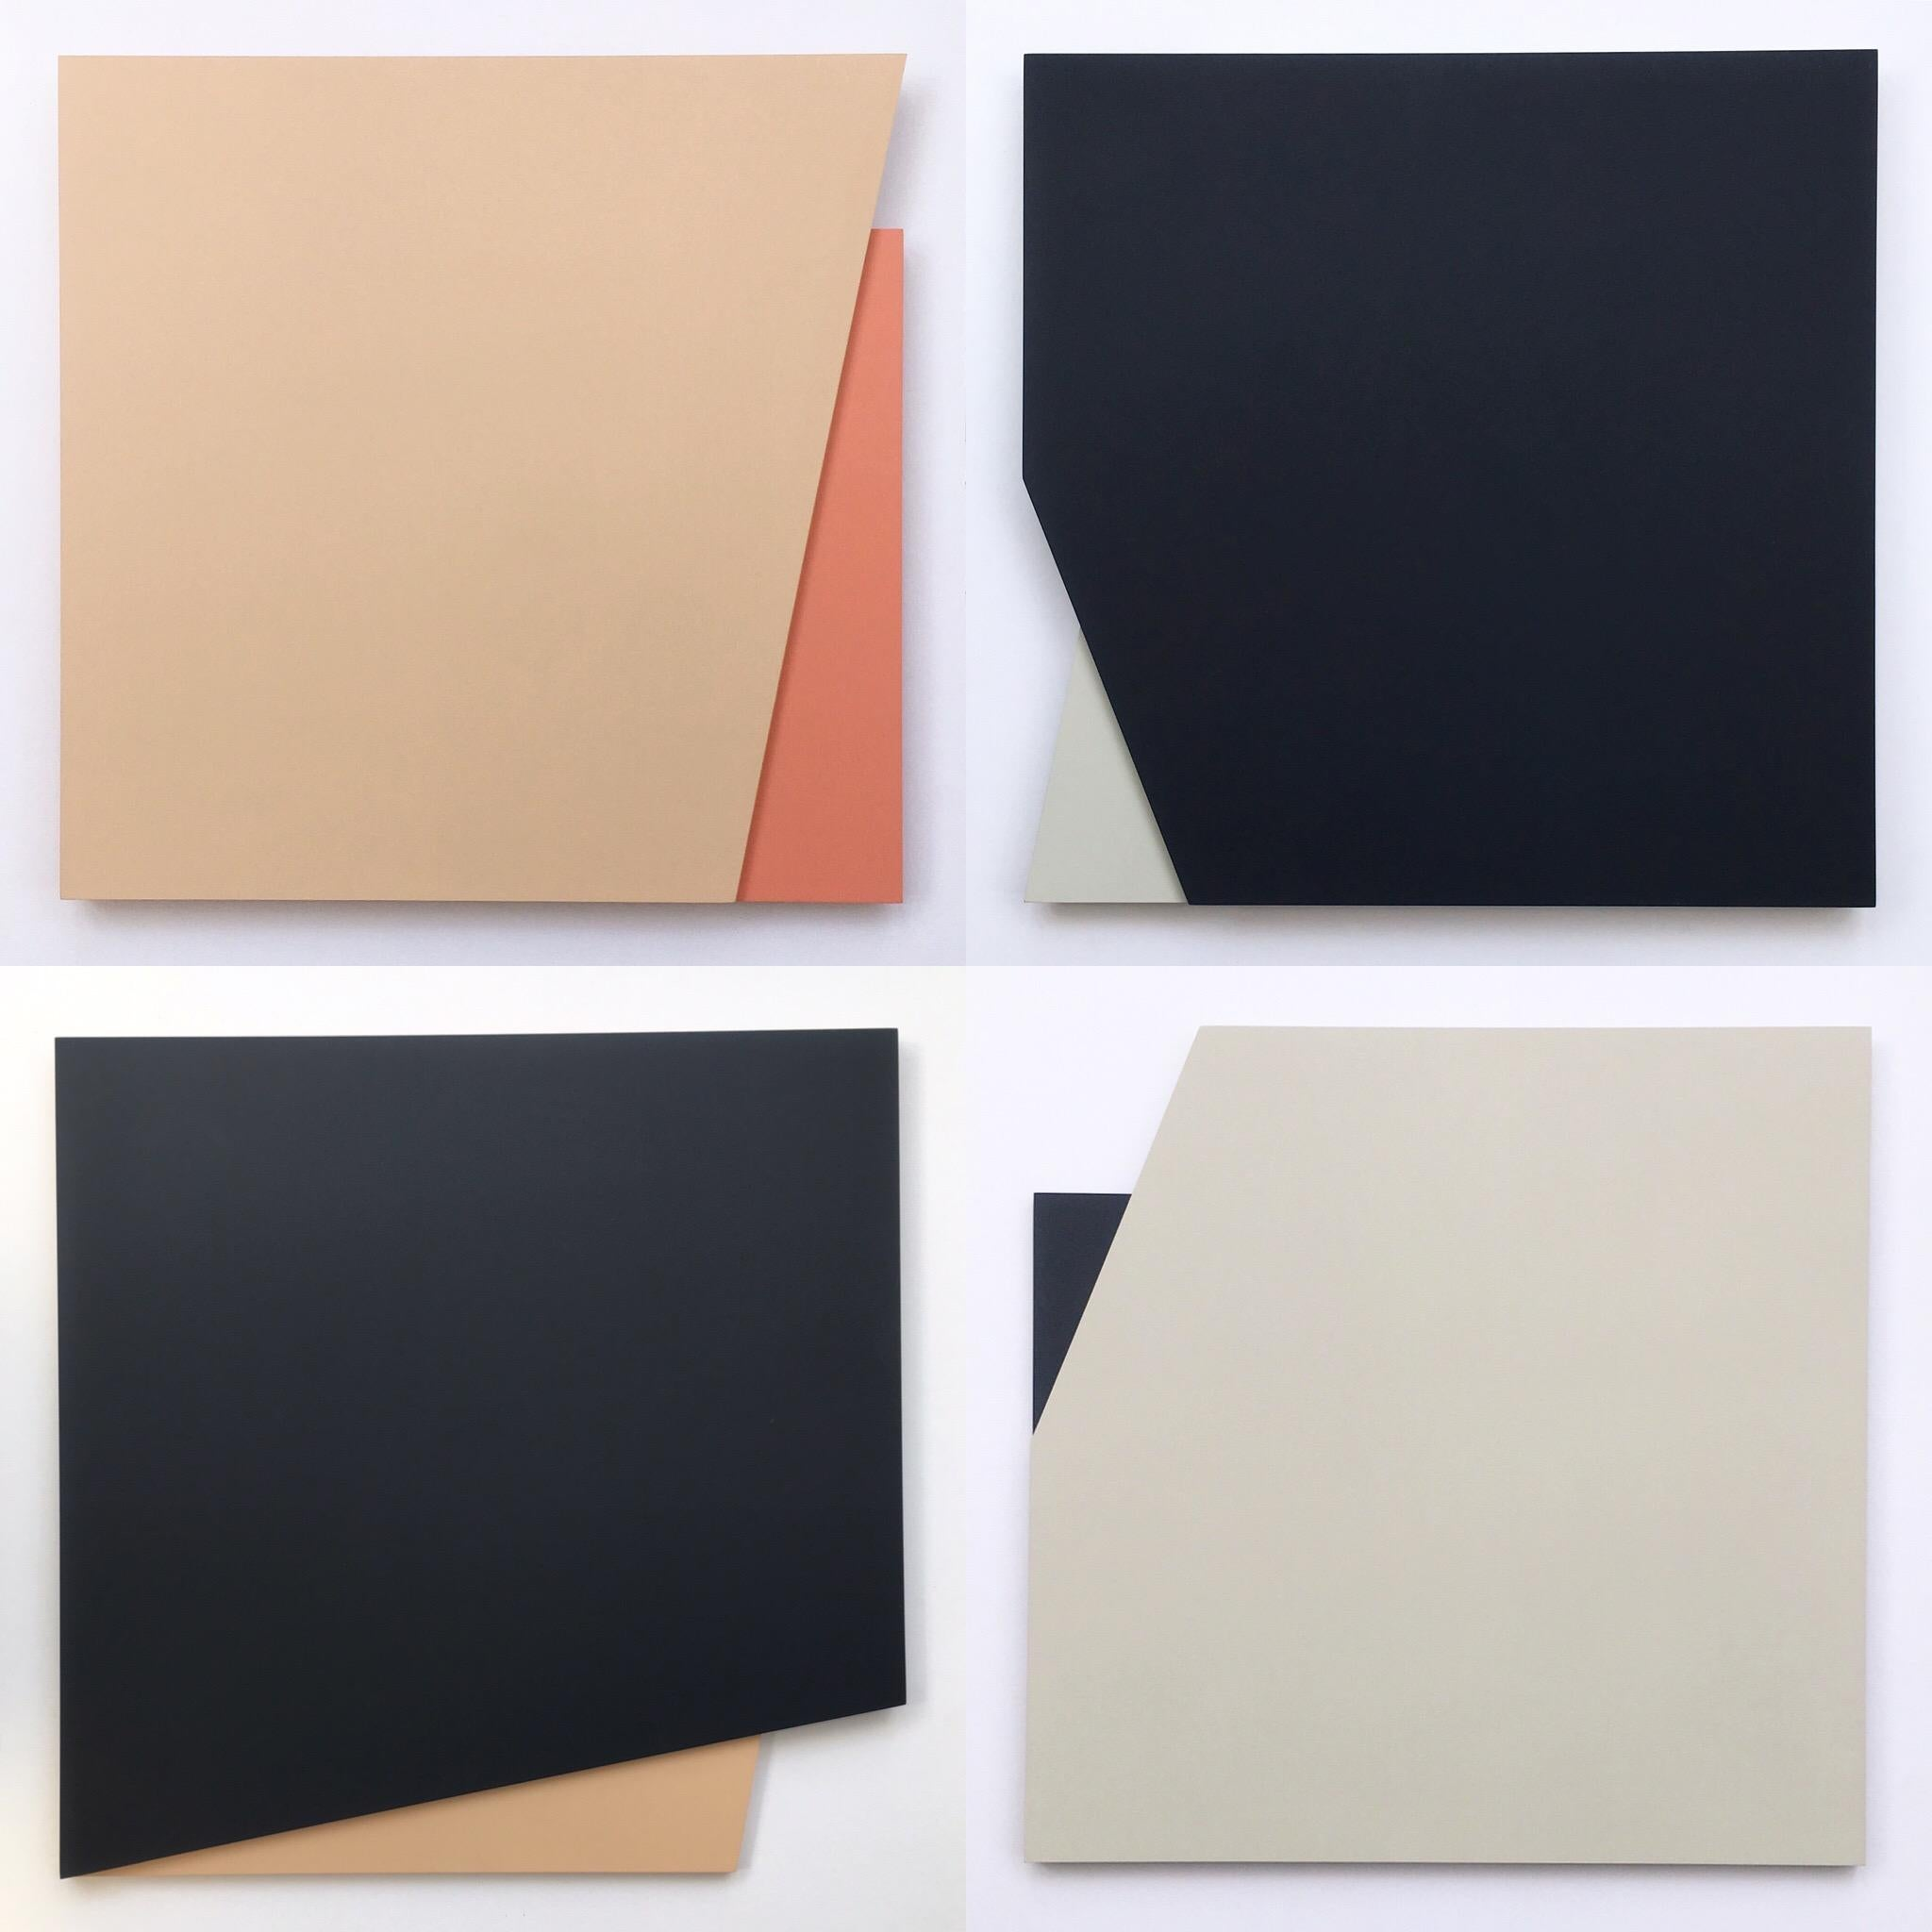 'Cut-out 50': Four Minimal Hard Edge Abstract Paintings by Laura Jane Scott